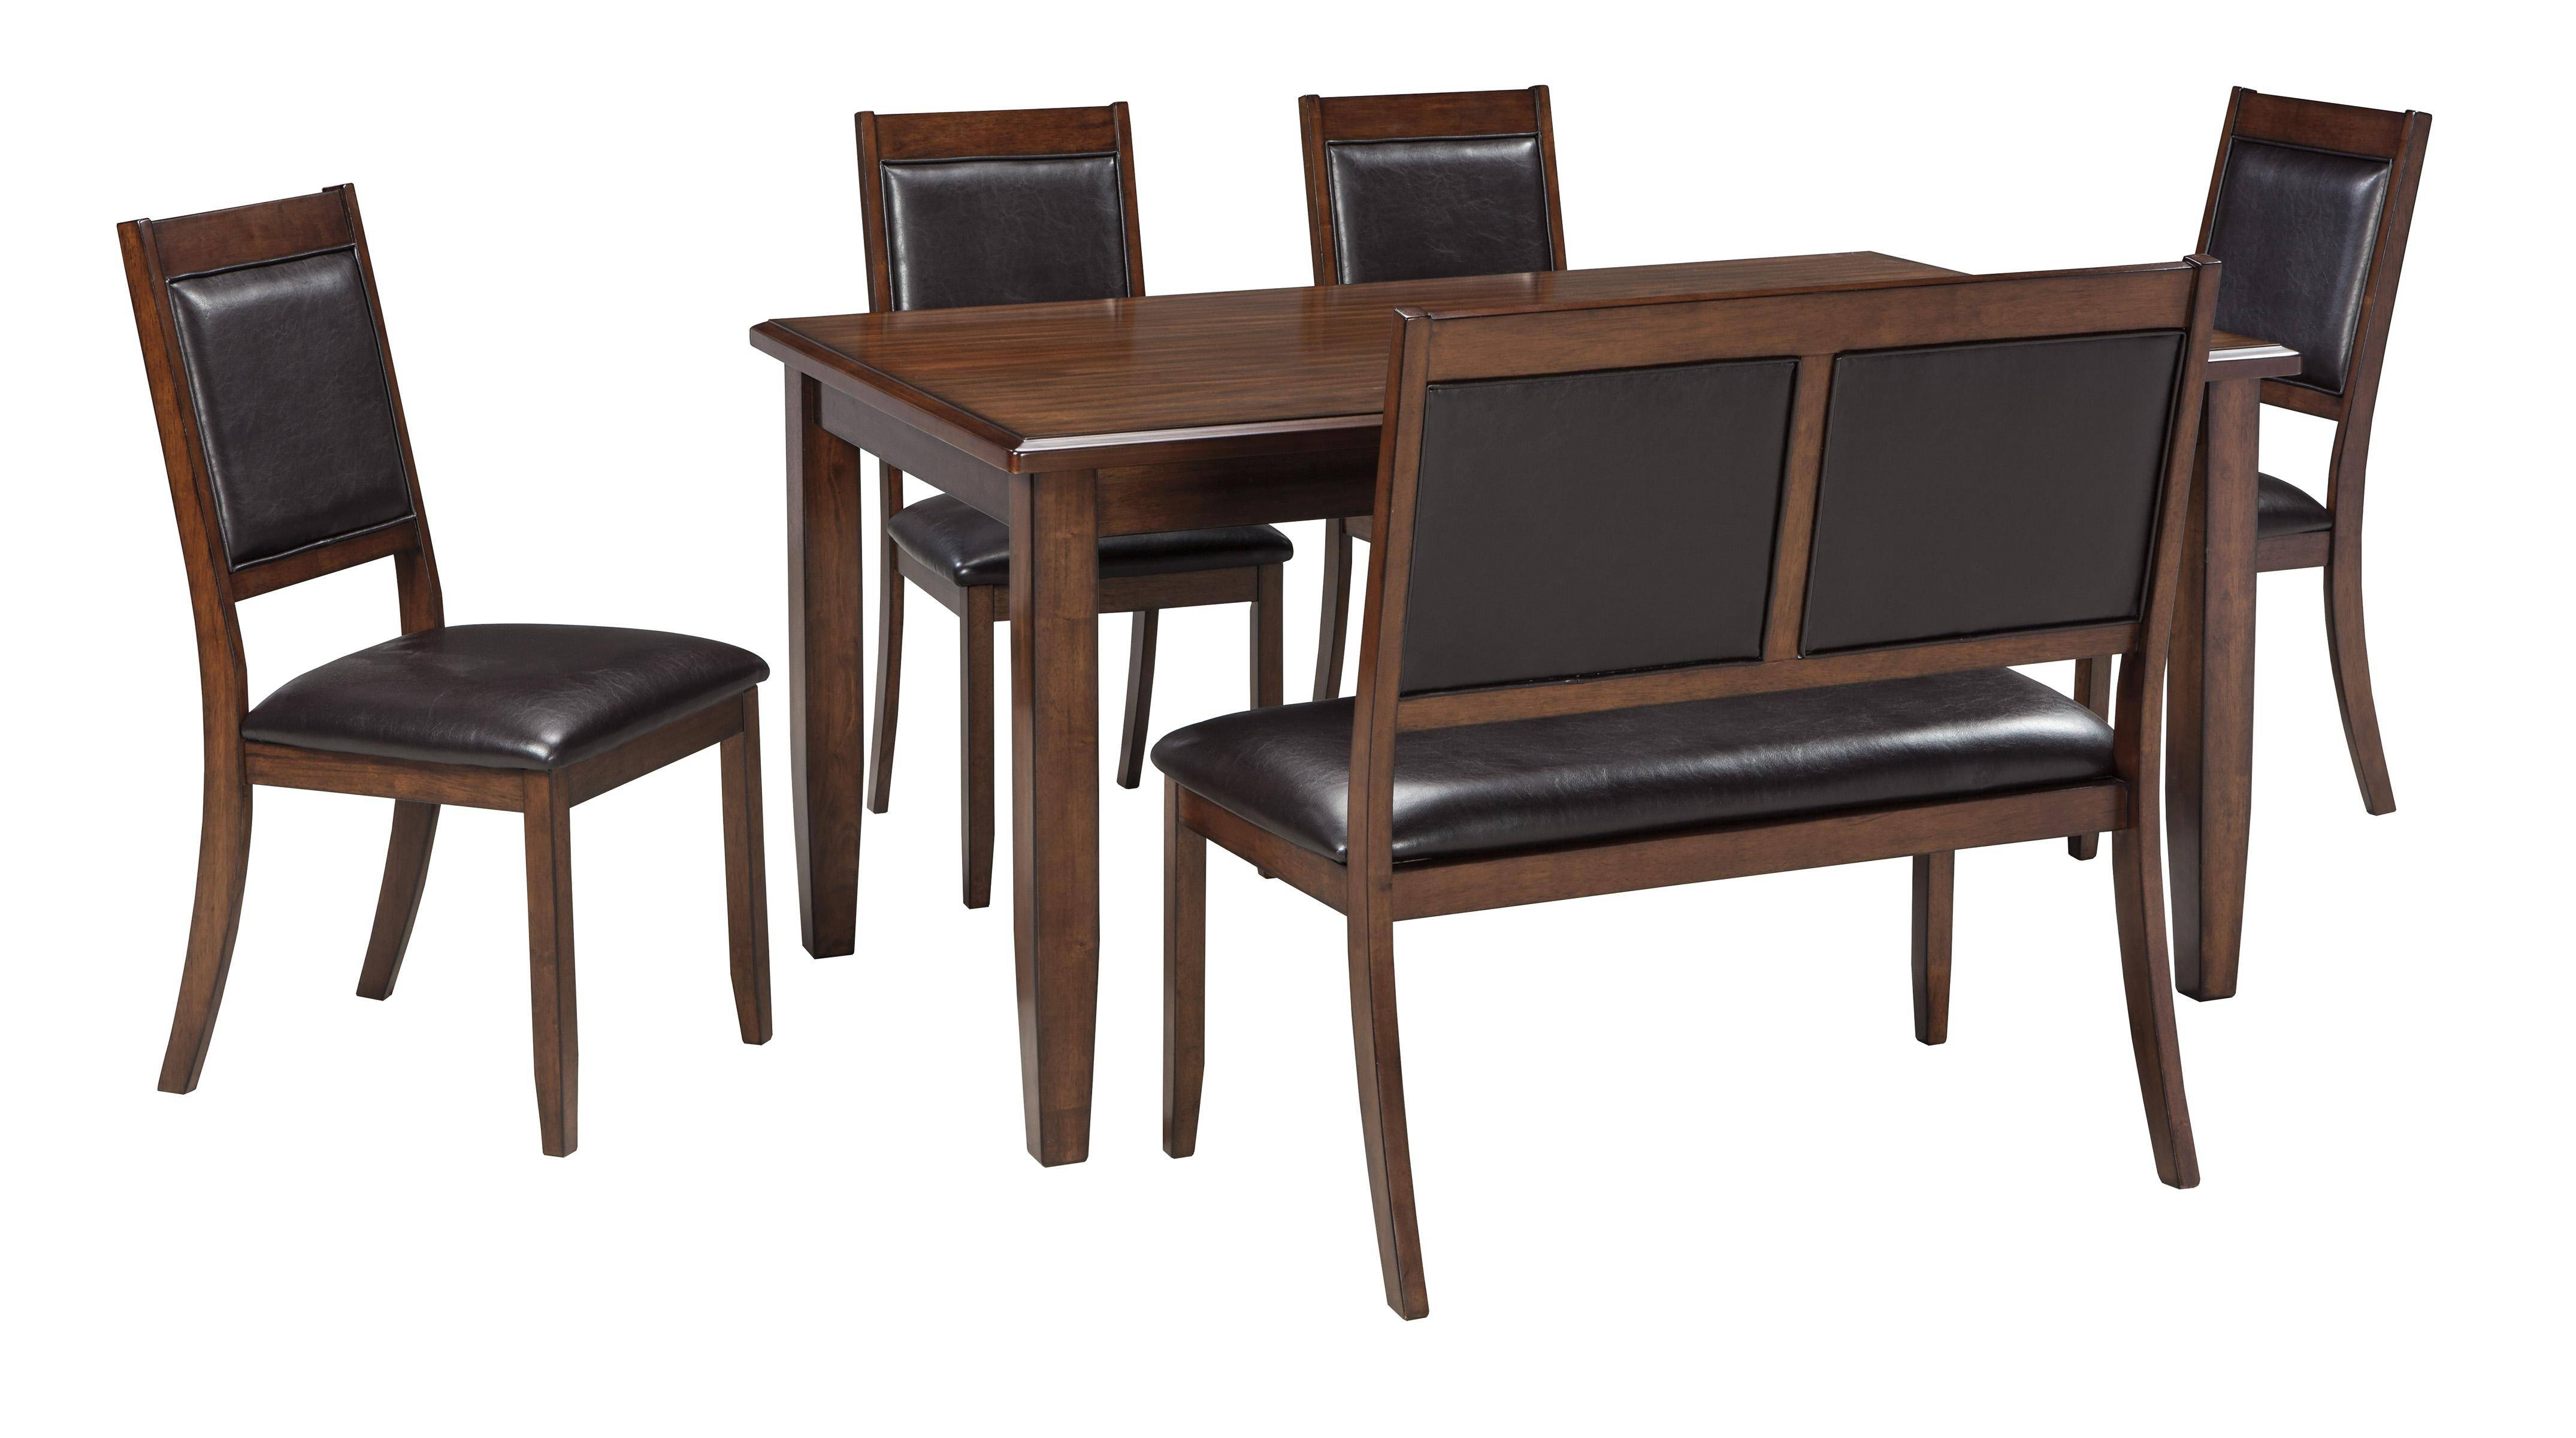 Ashley Meredy D395 Dining Room Set 6pcs In Brown D395 325